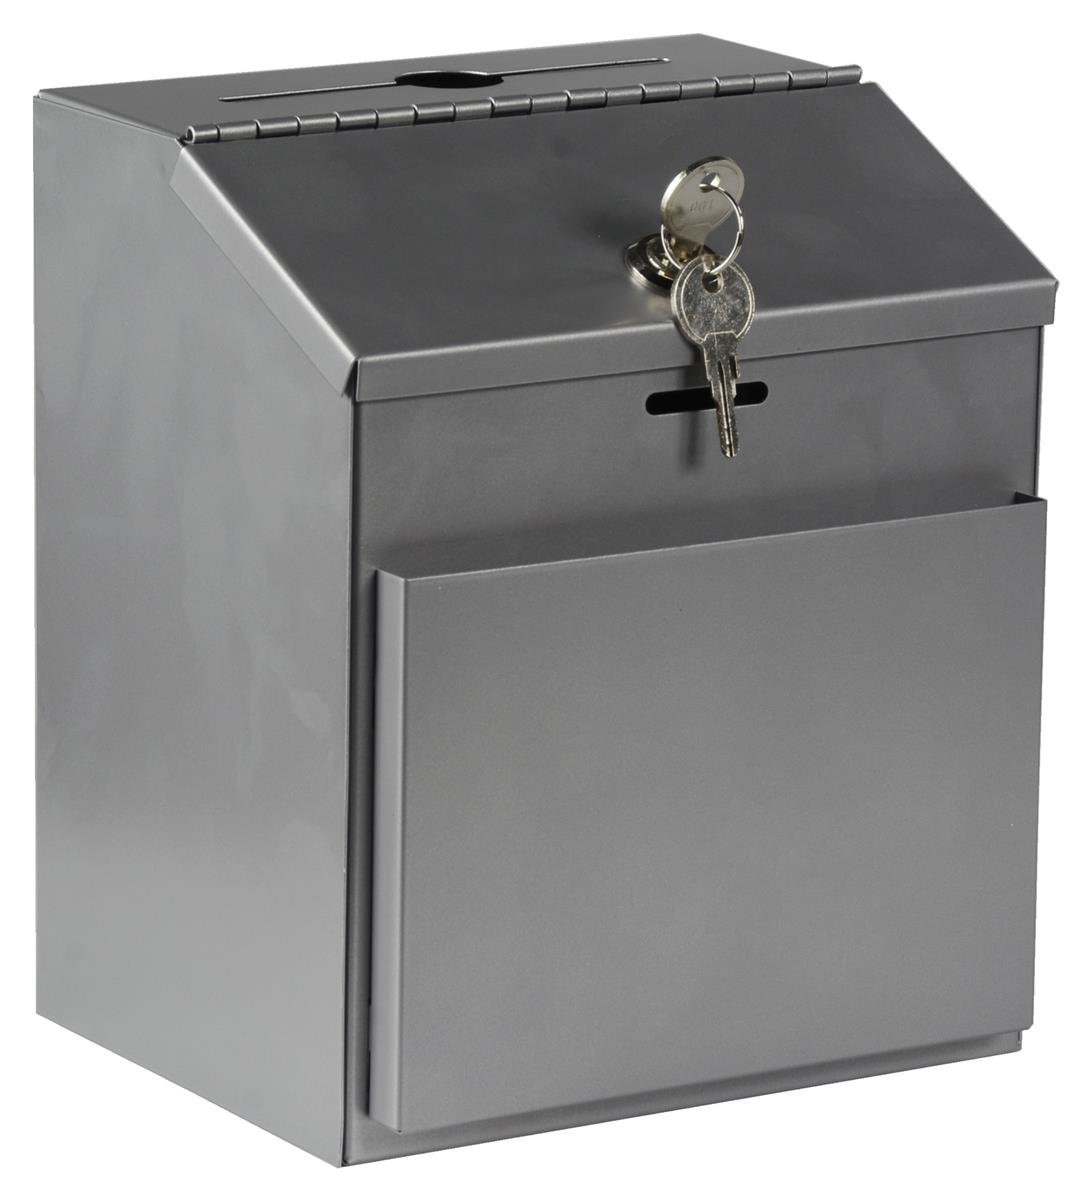 Displays2go Ballot Box with Locking Hinged Lid and Side Pocket for Forms (Not Included), Metal Suggestion Box for Tabletop or Wall Mount Use, Silver (STBOXSLV) by Displays2go